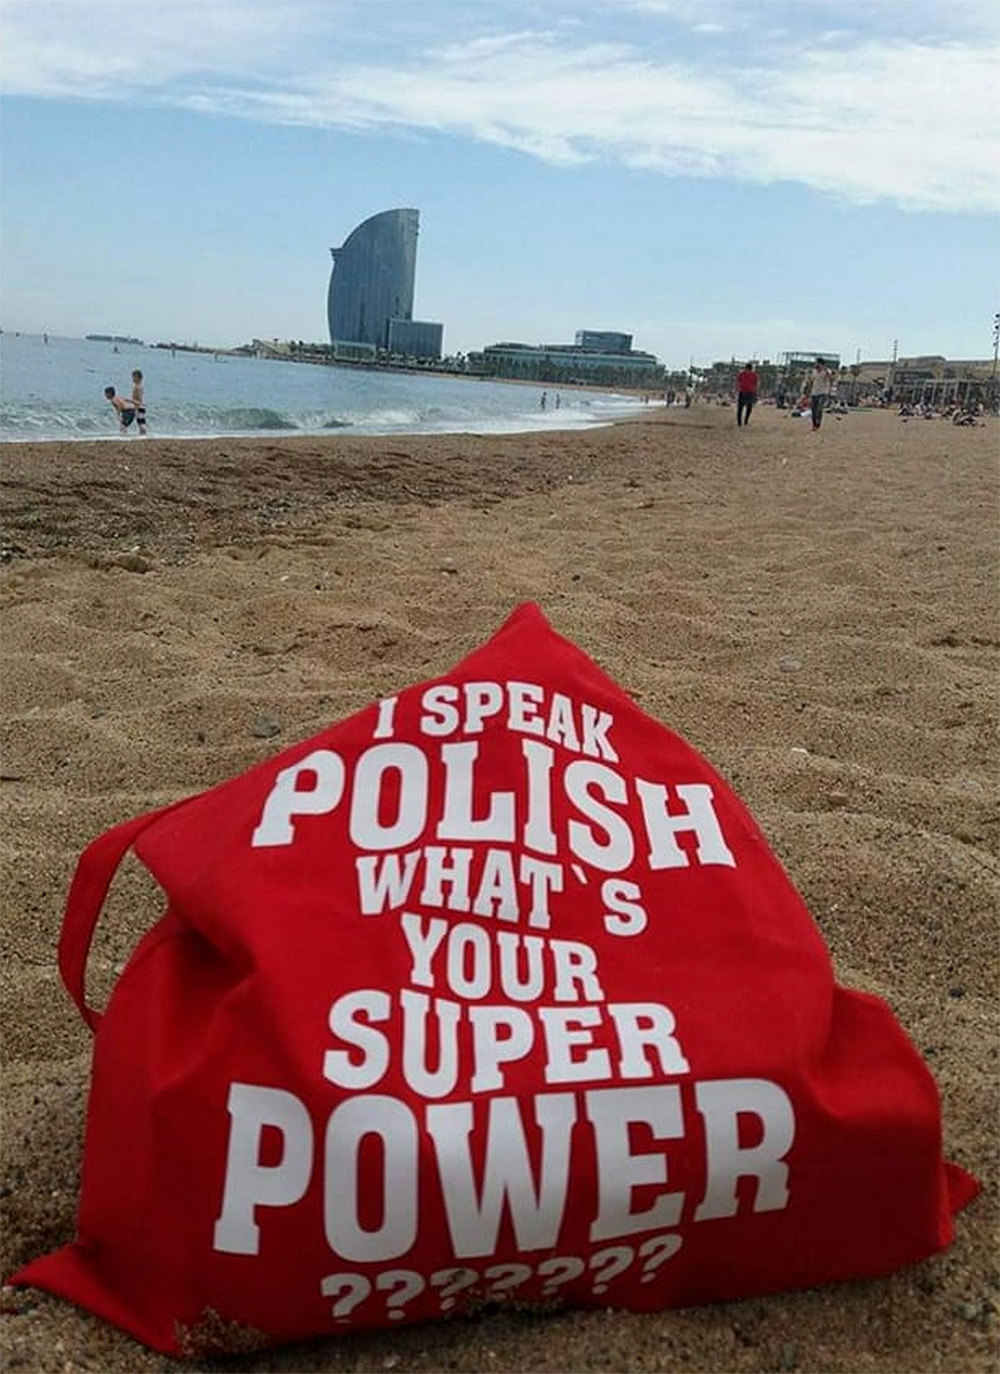 I speak polish what is your super power torba klientki w barcelonie